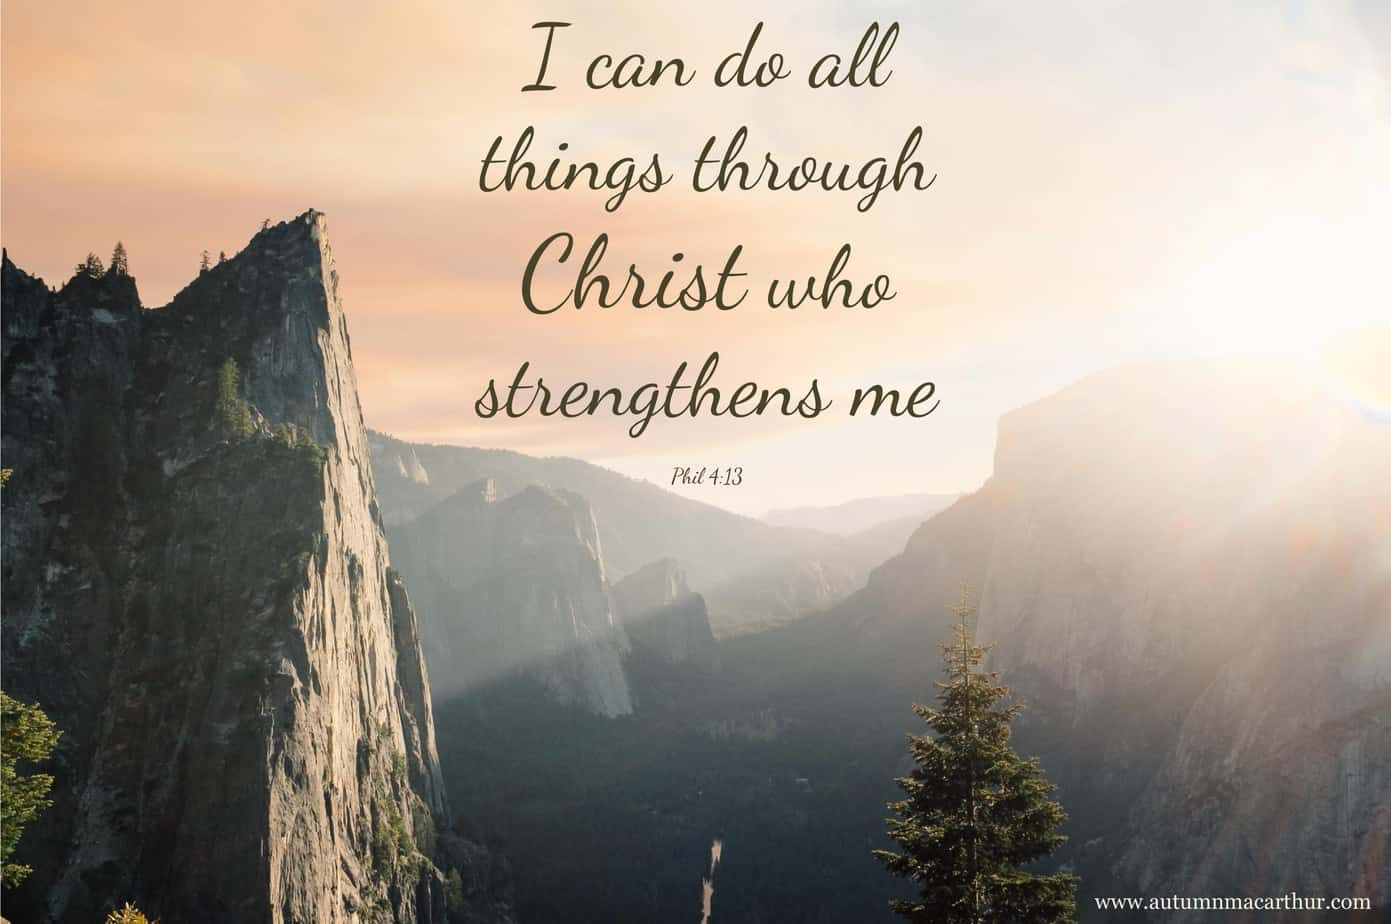 Image Of Mountain With Bible Verse Phil 413 From Autumn Macarthur Inspirational Romance I Can Do All Things Through Christ Who Strengthens Me